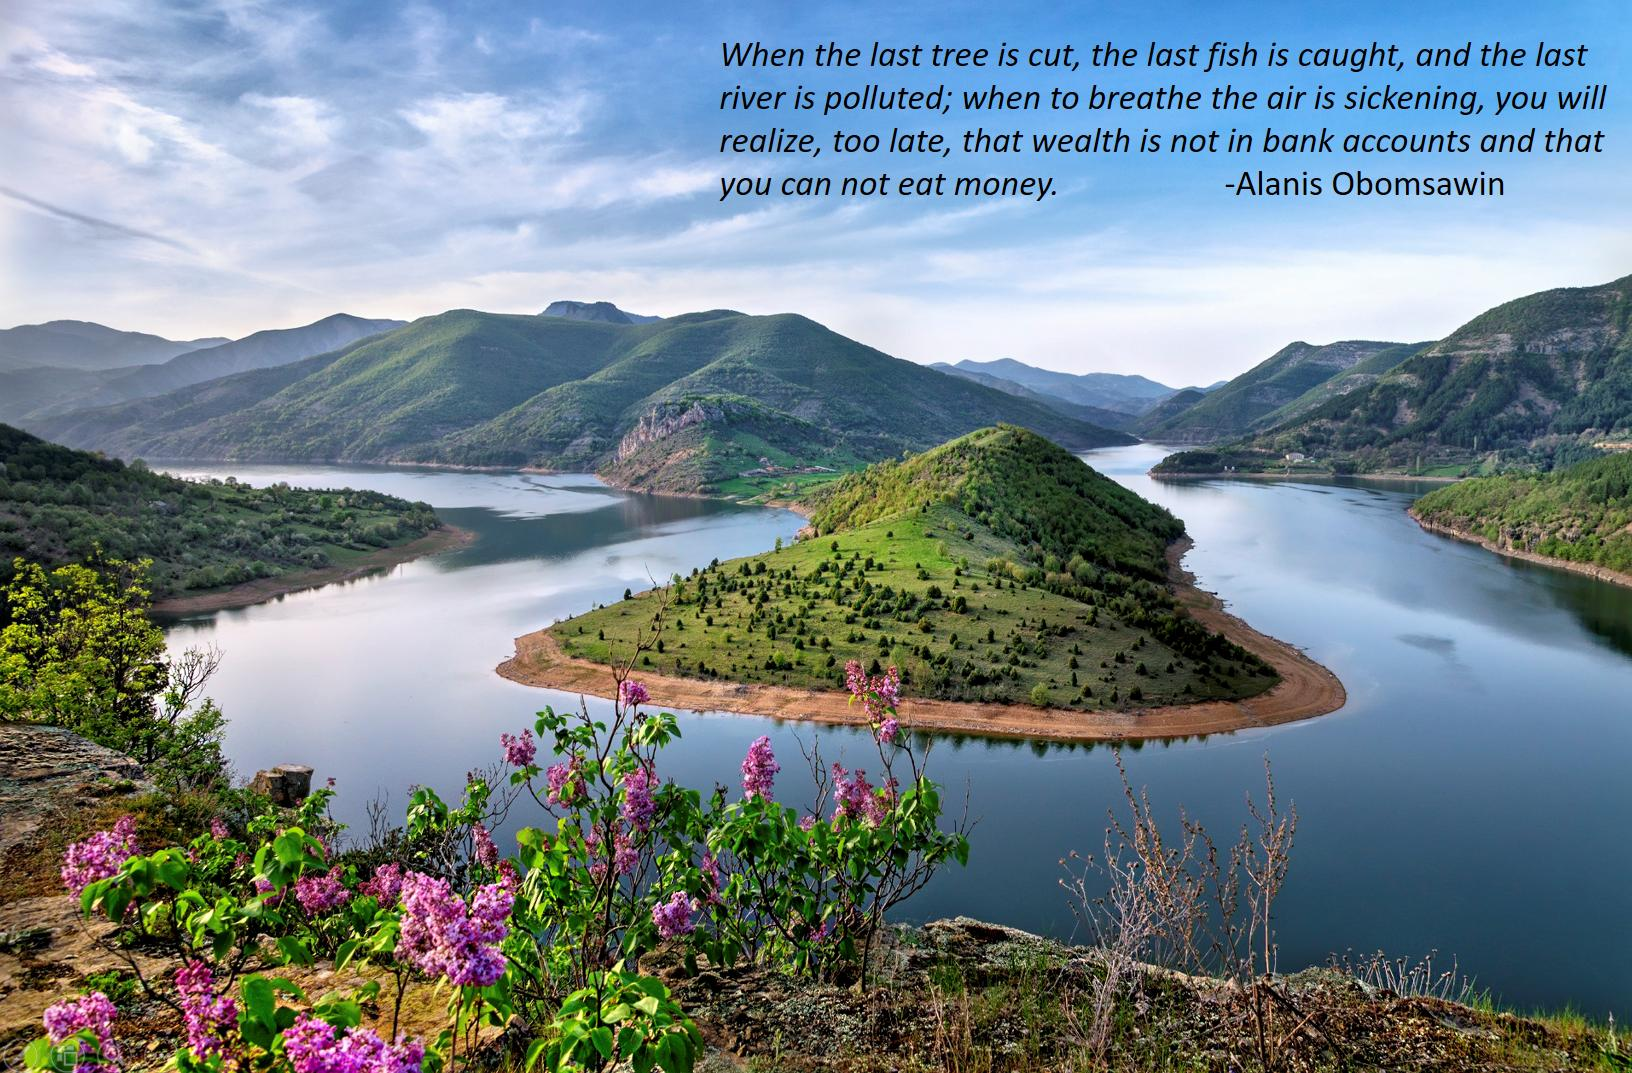 "[Image] ""When the last tree is cut, the last fish is caught, and the last river is polluted; when to breathe the air is sickening, you will realize, too late, that wealth is not in bank accounts and that you can't eat money."" -Alanis Obomsawin"